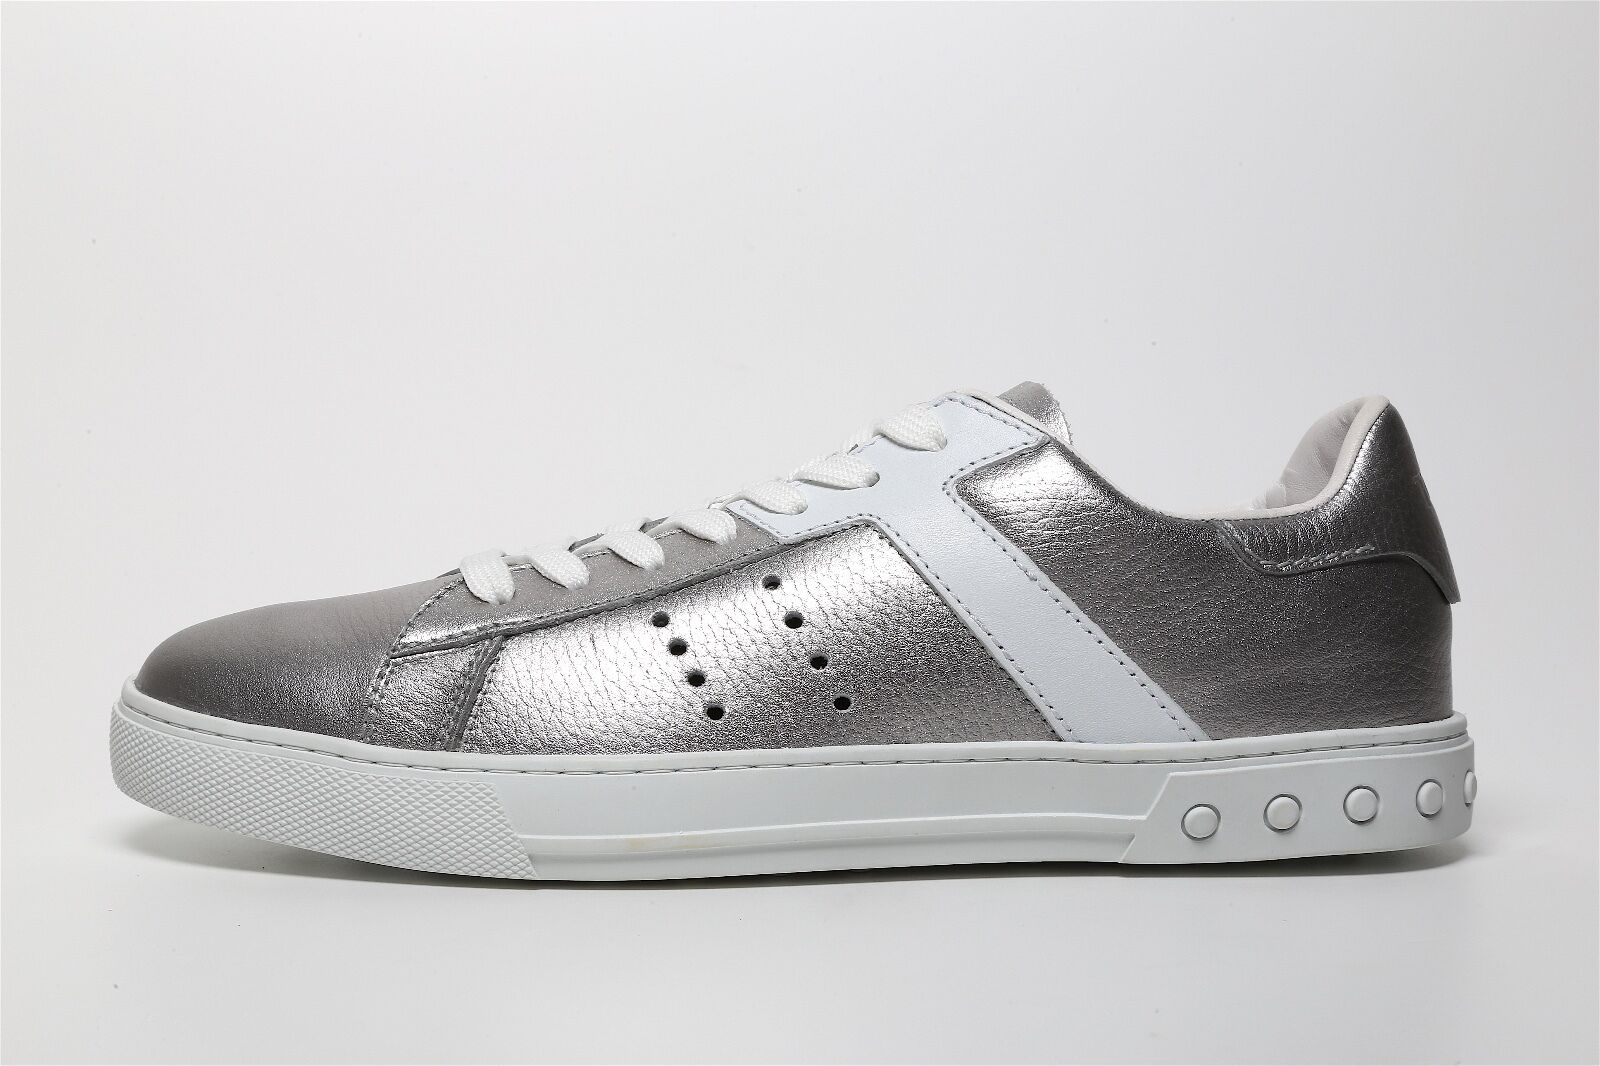 Tod's Men's Laced Silver White Low Top Sneakers 6059 Sz 8